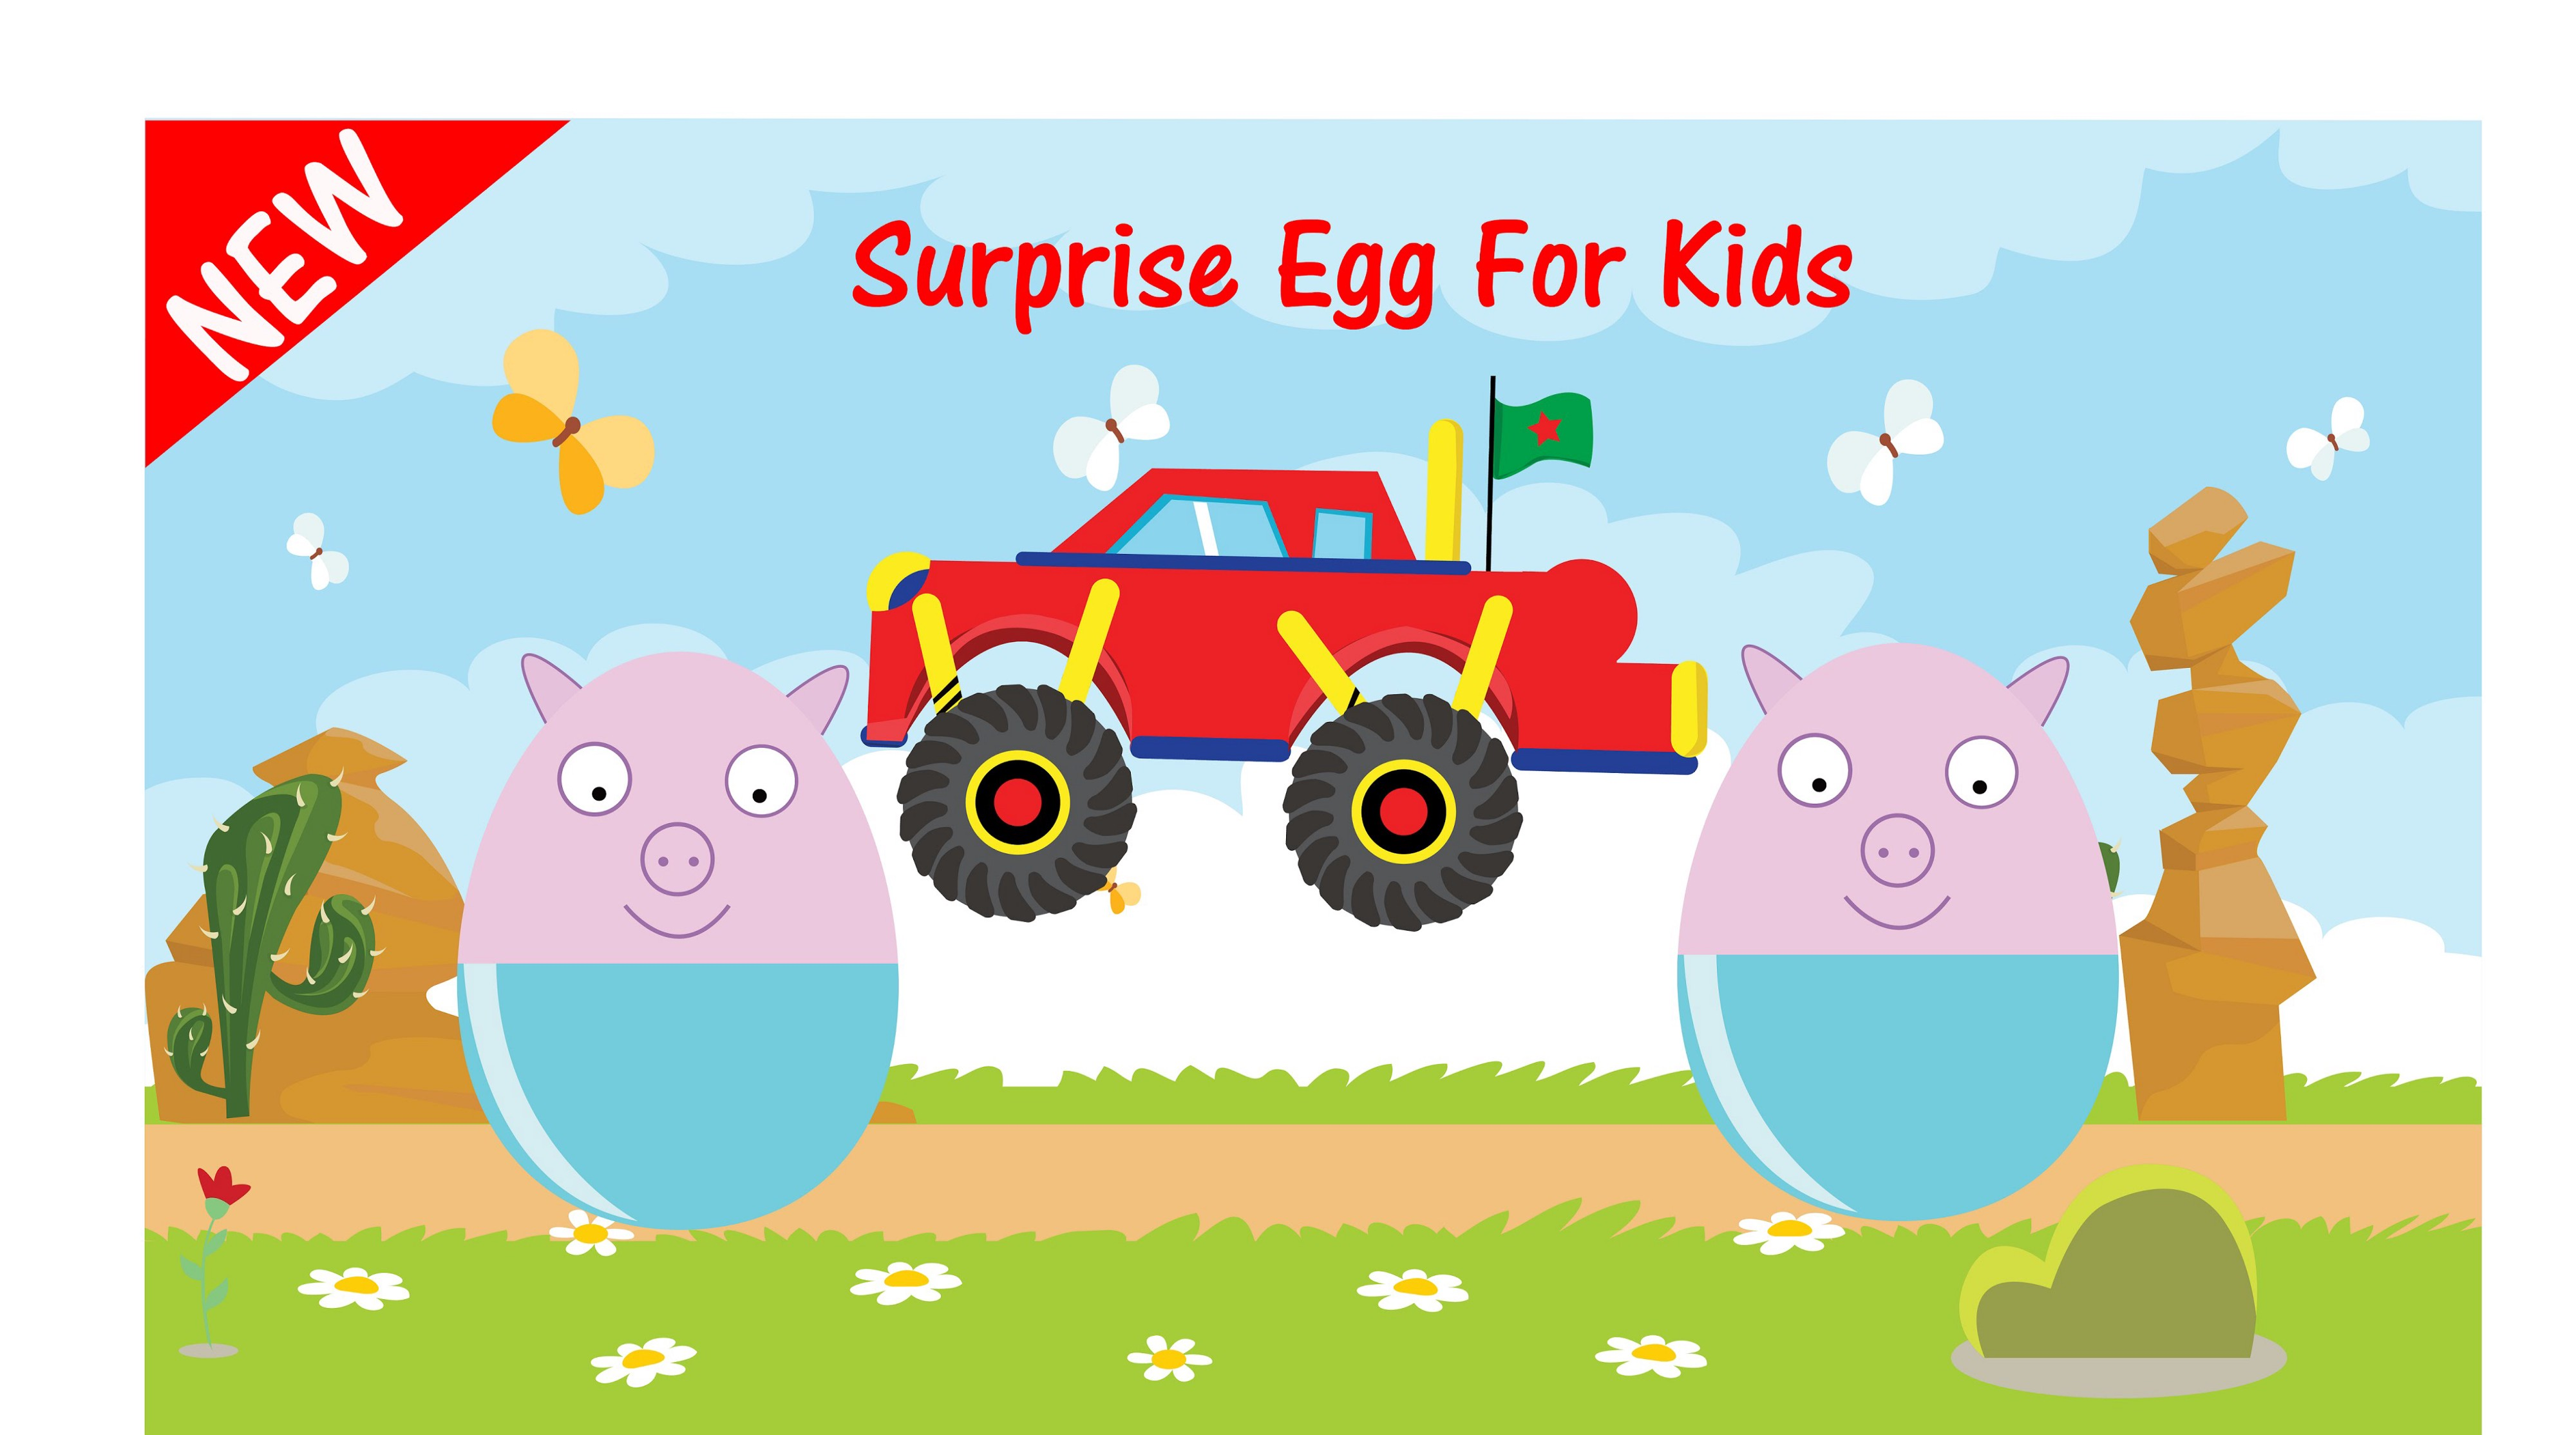 New Big Surprise Egg Play Doh 2016 For Kids Monster Truck And Peppa Pig Youtube By Jason Hiep Medium